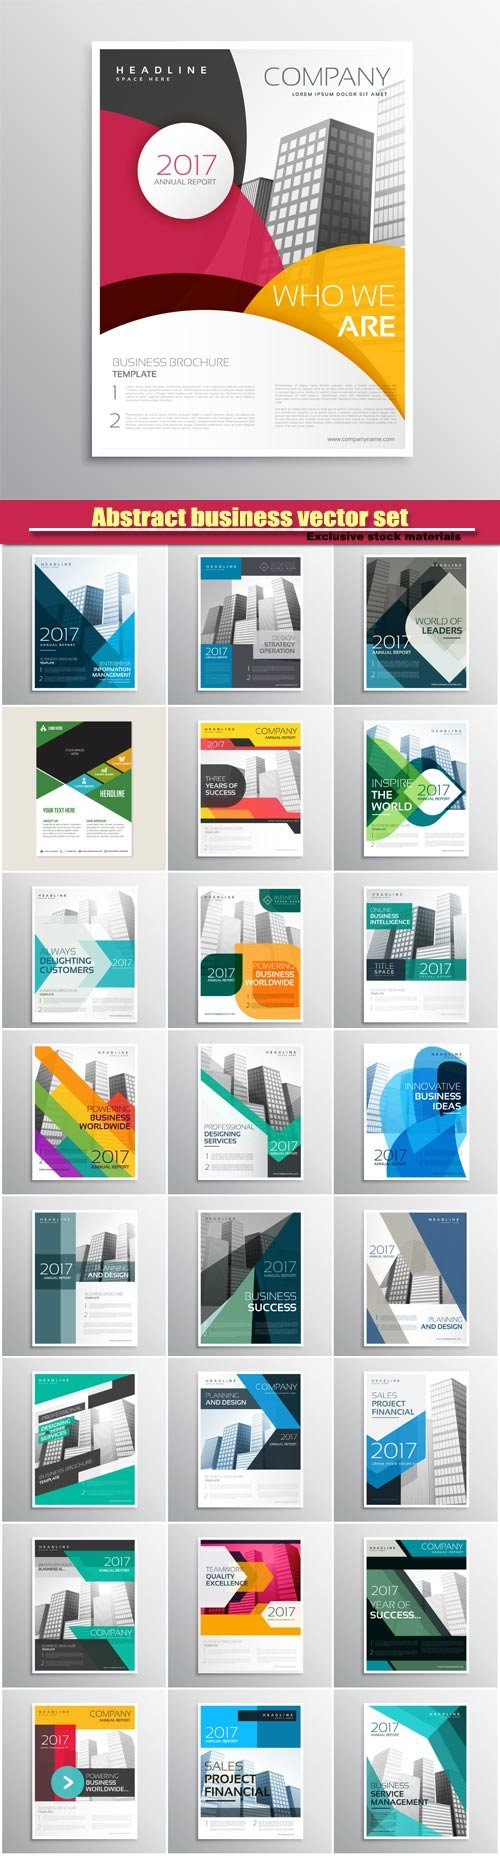 Corporate vector brand business brochure template